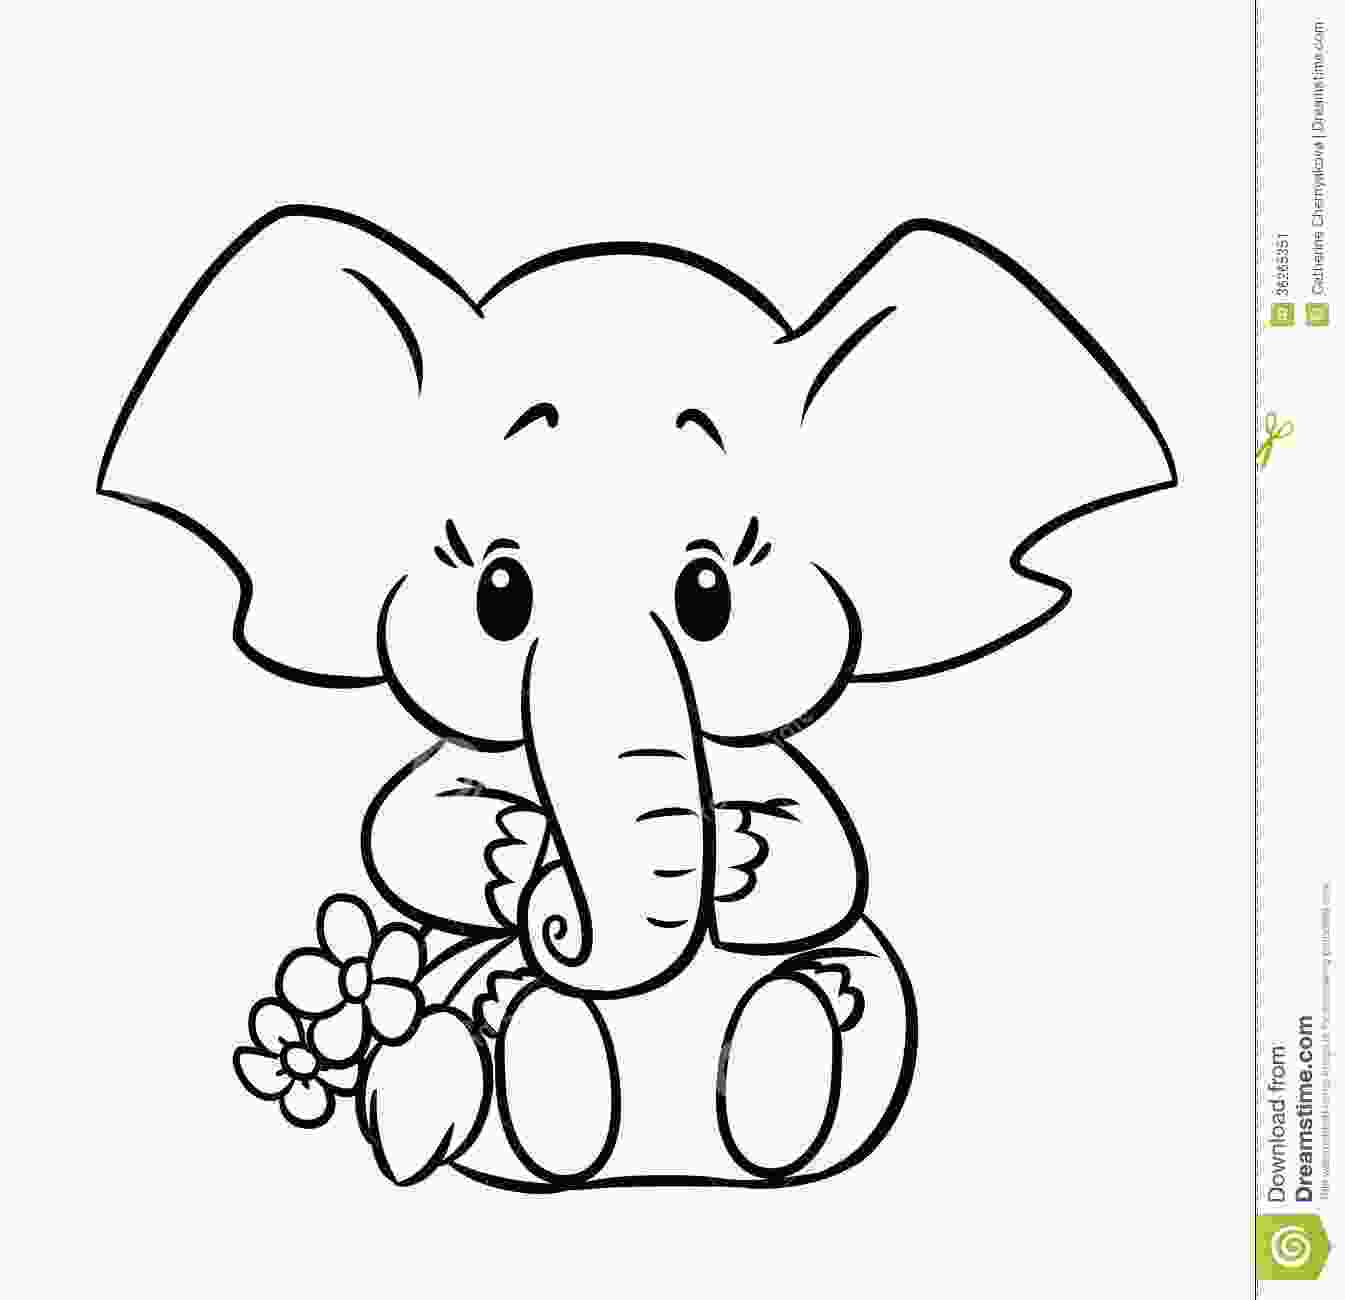 elephant coloring sheets elephant coloring pages pinterest tumblr google yahoo